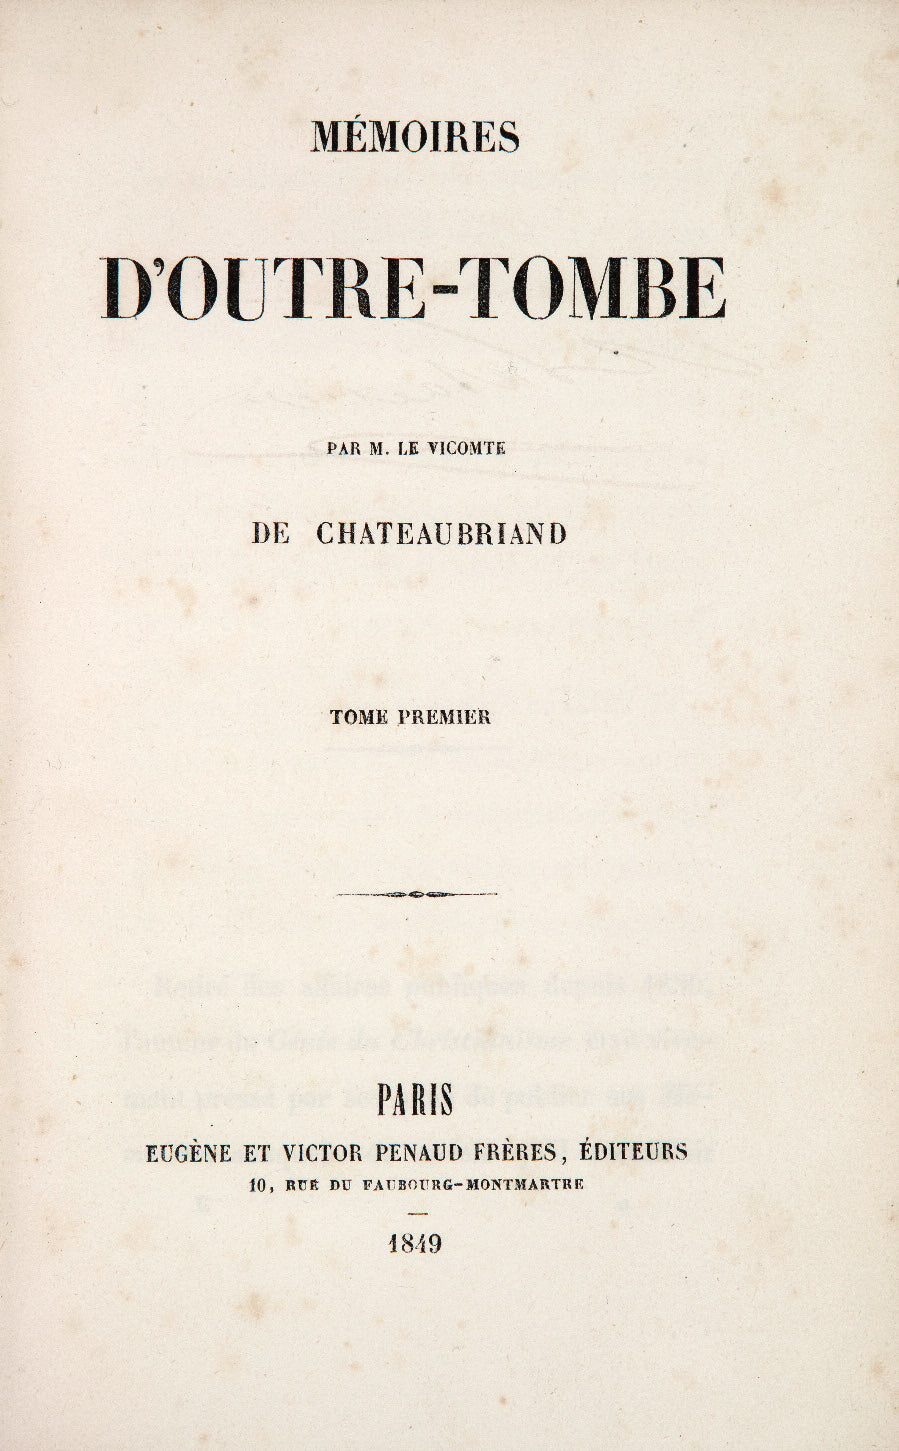 The title page for an 1849 edition of  Mémoires d'outre-tombe.